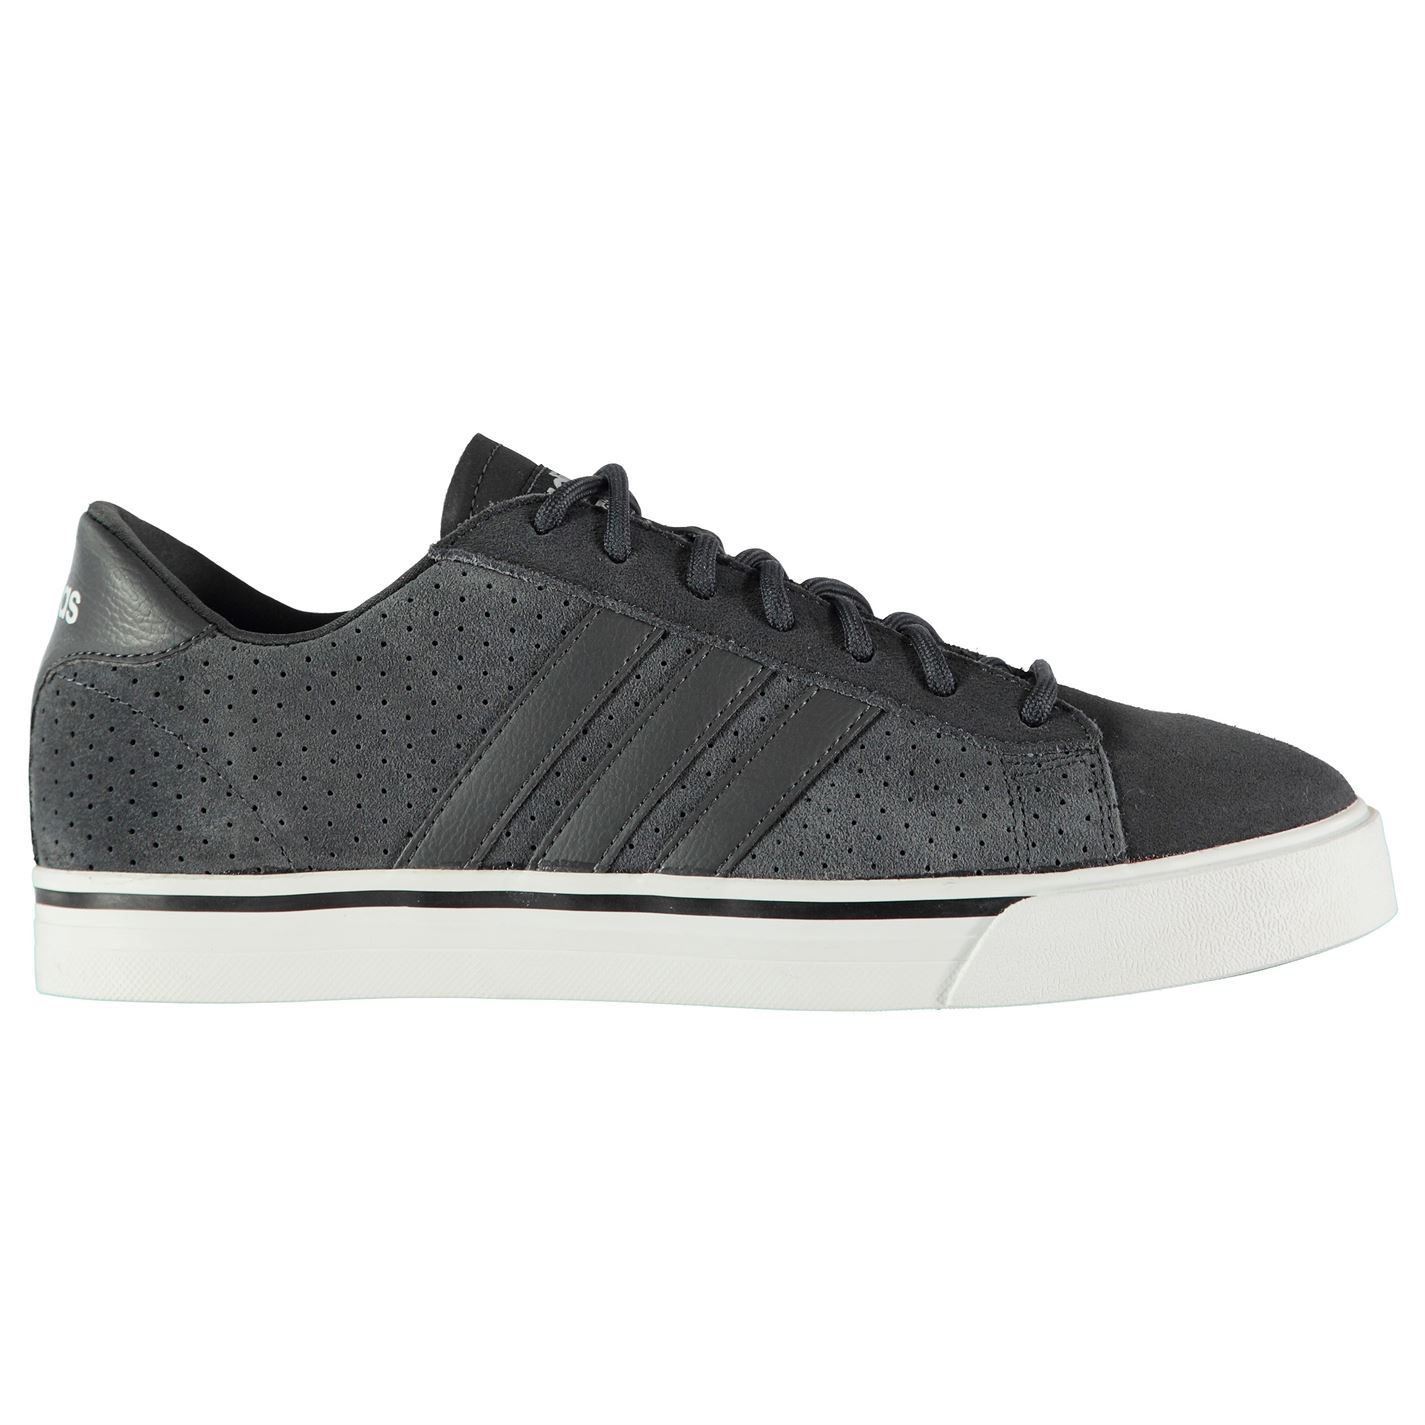 Adidas Cloudfoam Suede Super Daily Schuhes  Uomo Gents Suede Cloudfoam Sneakers Laces Fastened 0266f0